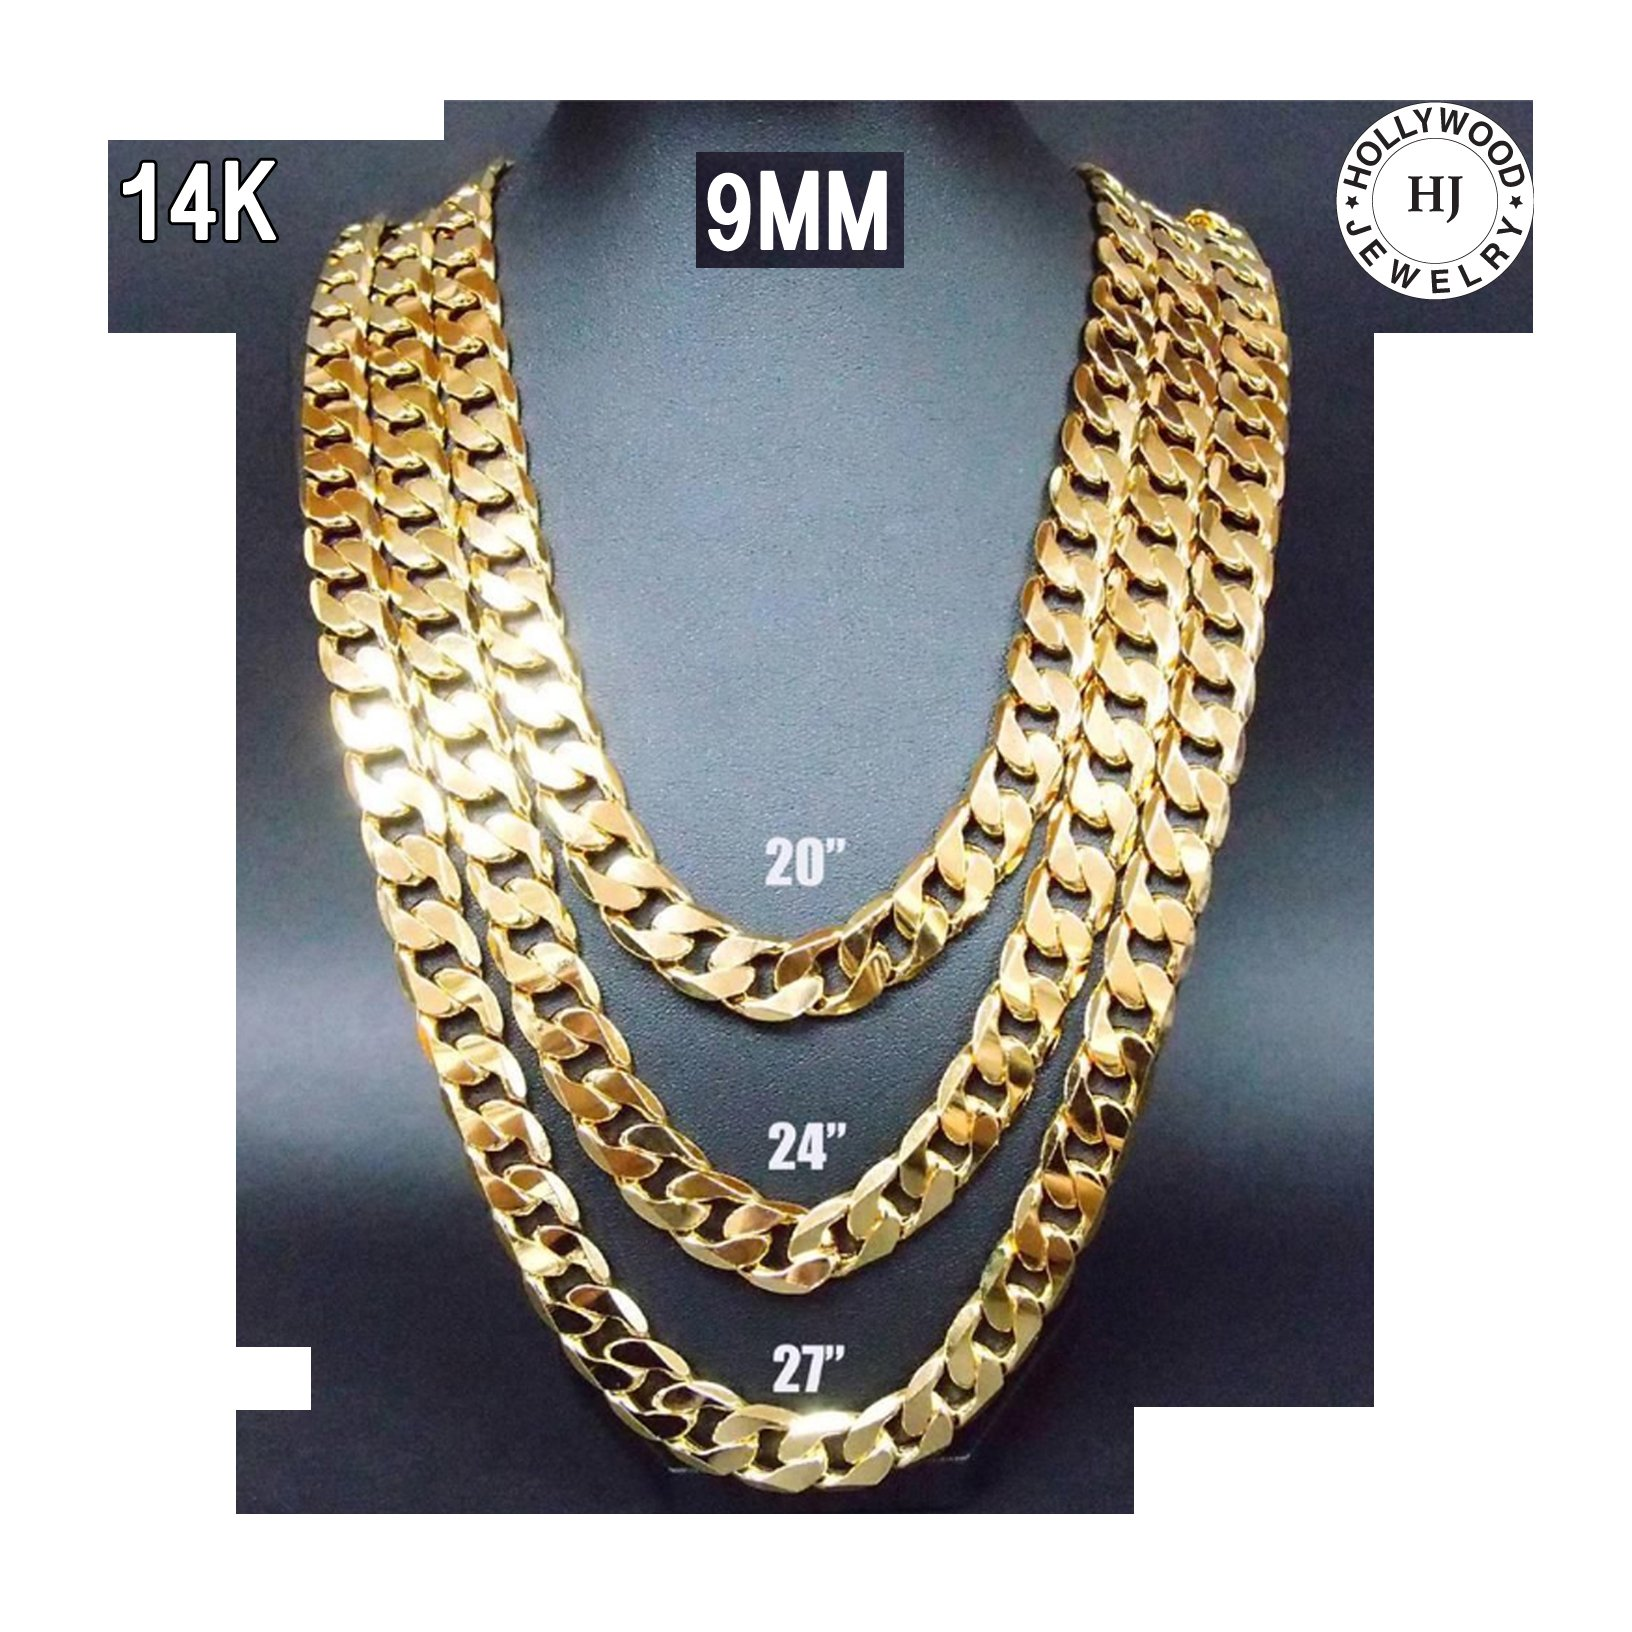 22 inch 14k gold chain cuban necklace men 9mm link w real. Black Bedroom Furniture Sets. Home Design Ideas